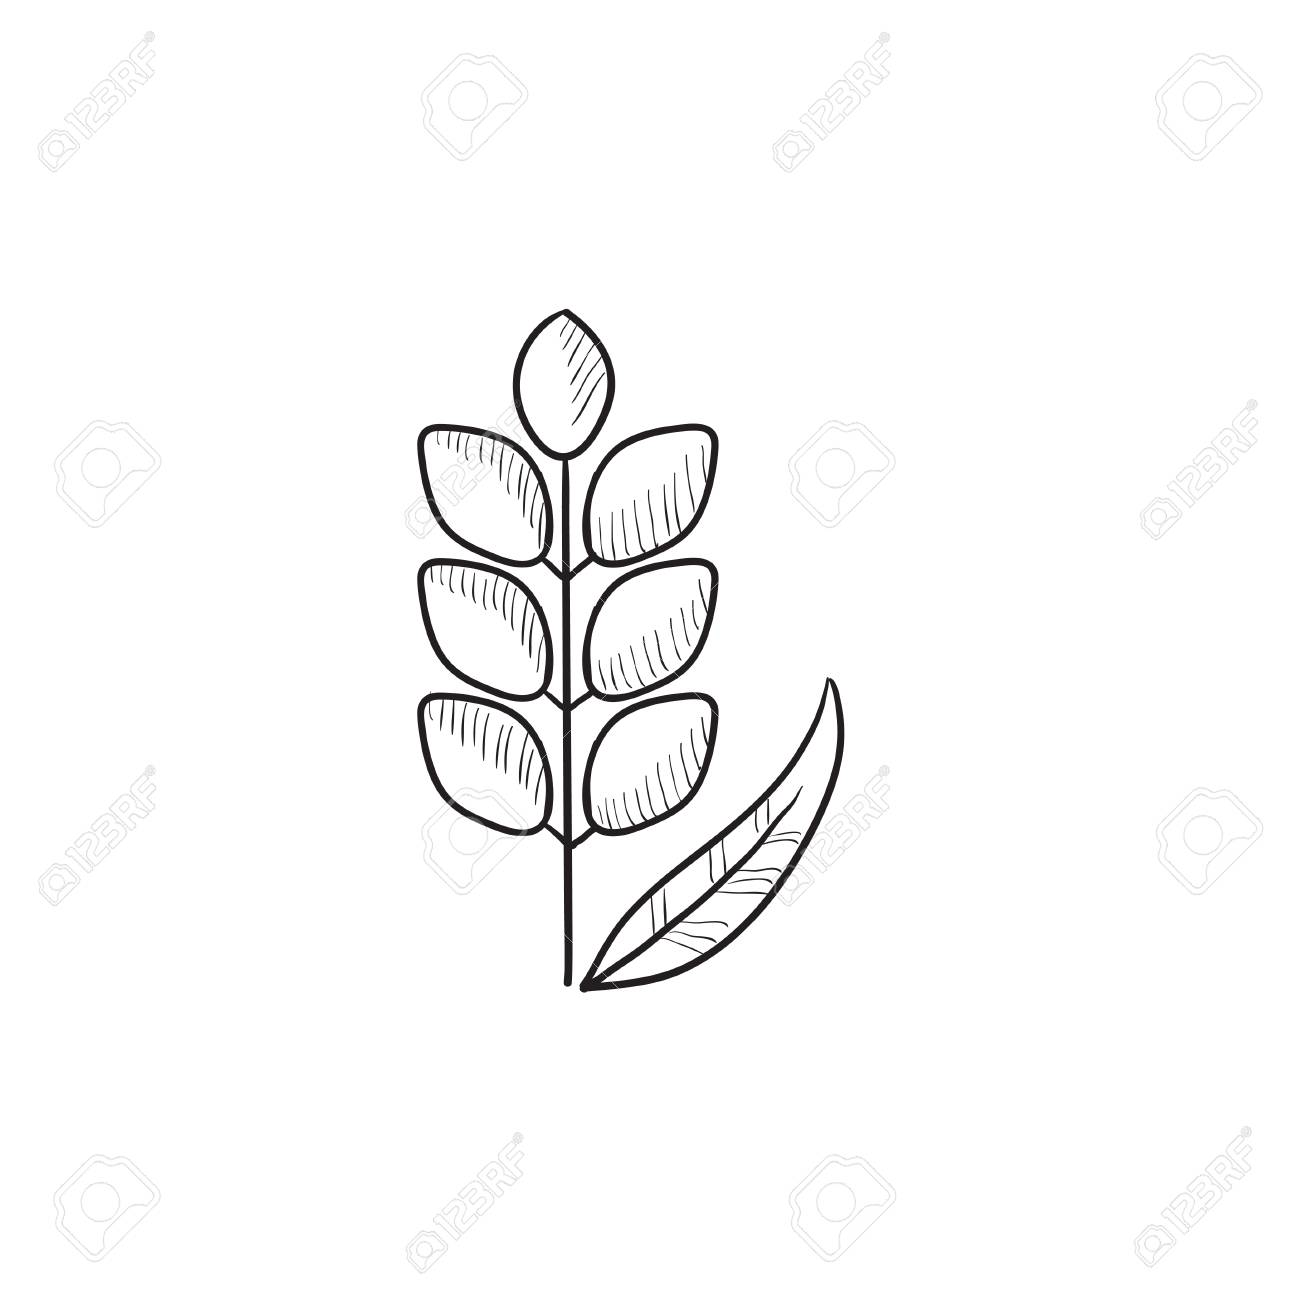 1300x1300 Wheat Vector Sketch Icon Isolated On Background. Hand Drawn Wheat